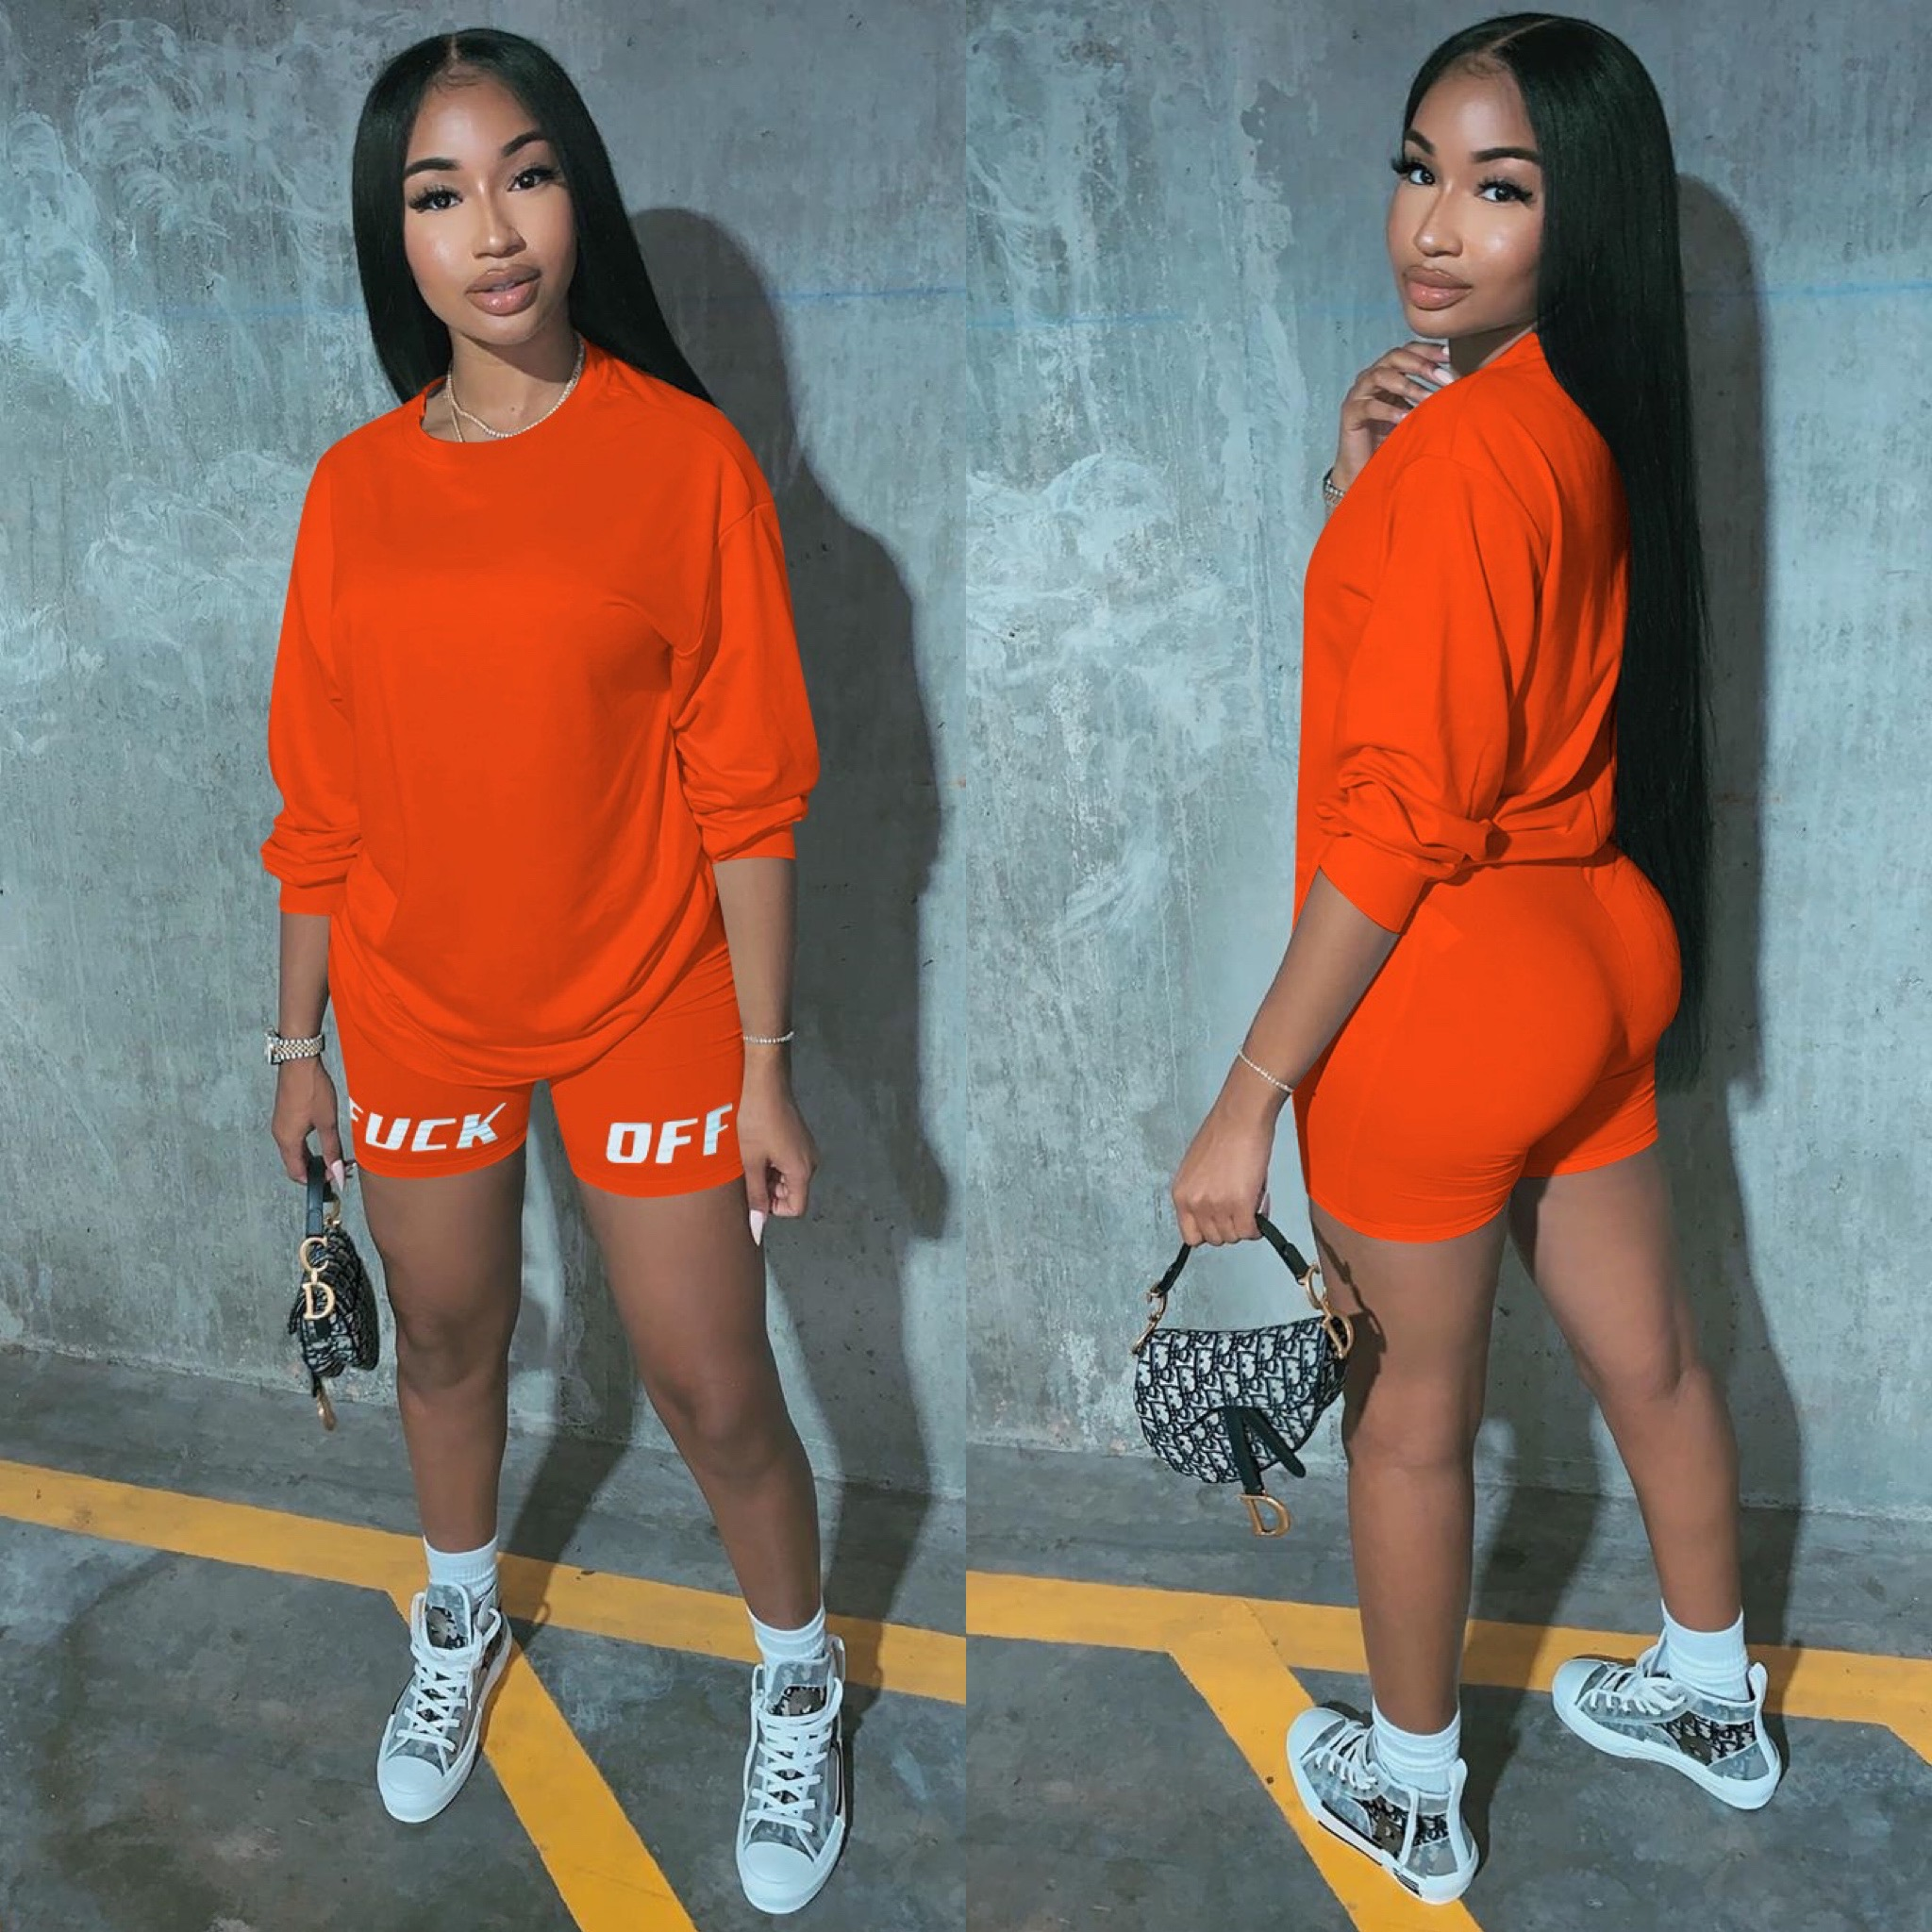 2020 New Summer Letter Print Casual Women's Two Piece Outfits Set Tracksuit Shirt Sexy Top +Biker Shorts Jogger 2 piece Active(China)